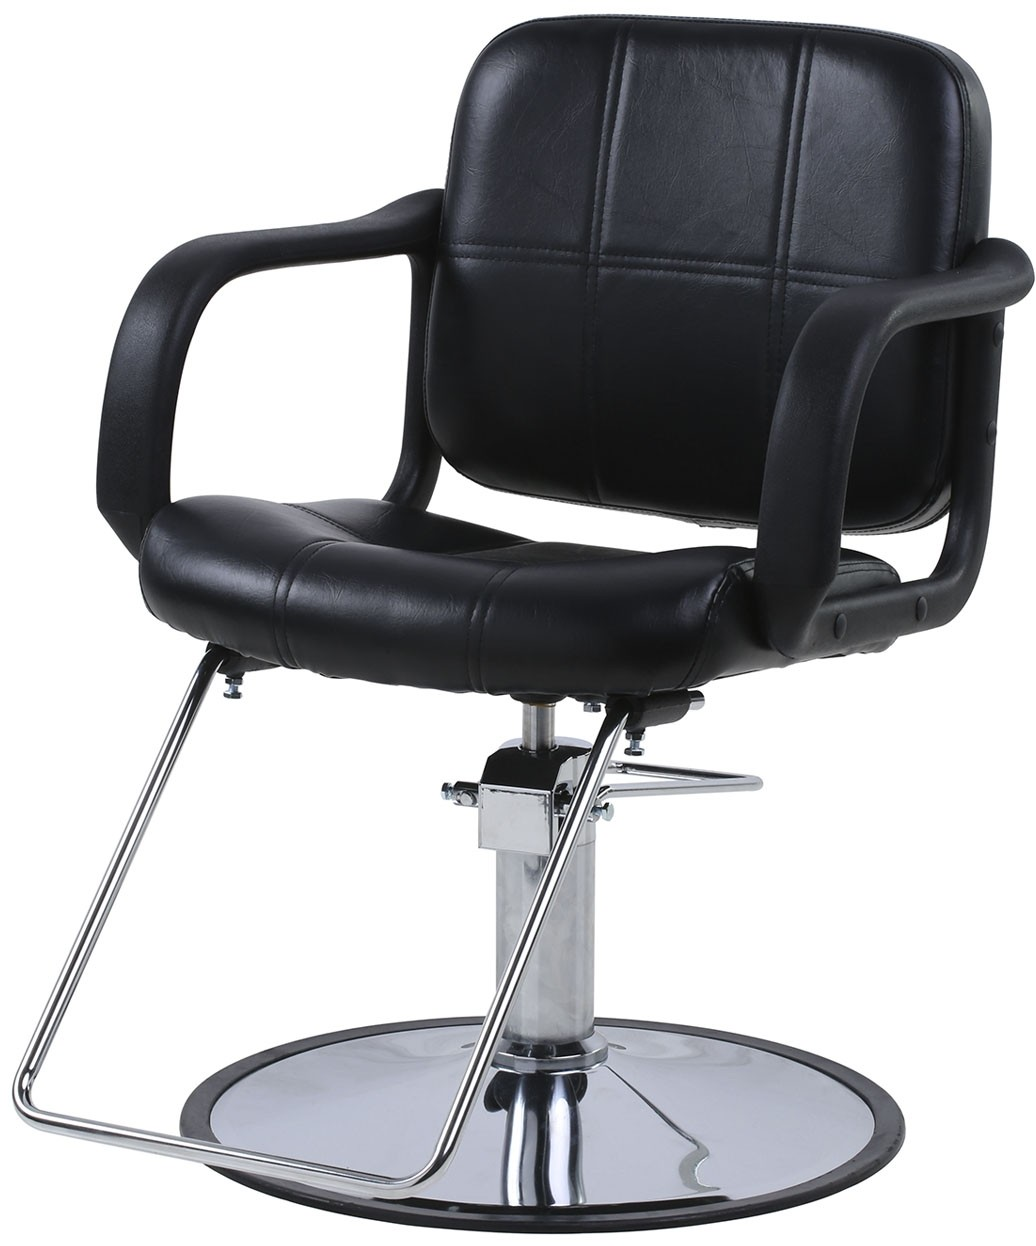 Hydraulic Salon Styling Chair Chris Styling Chair  Pump